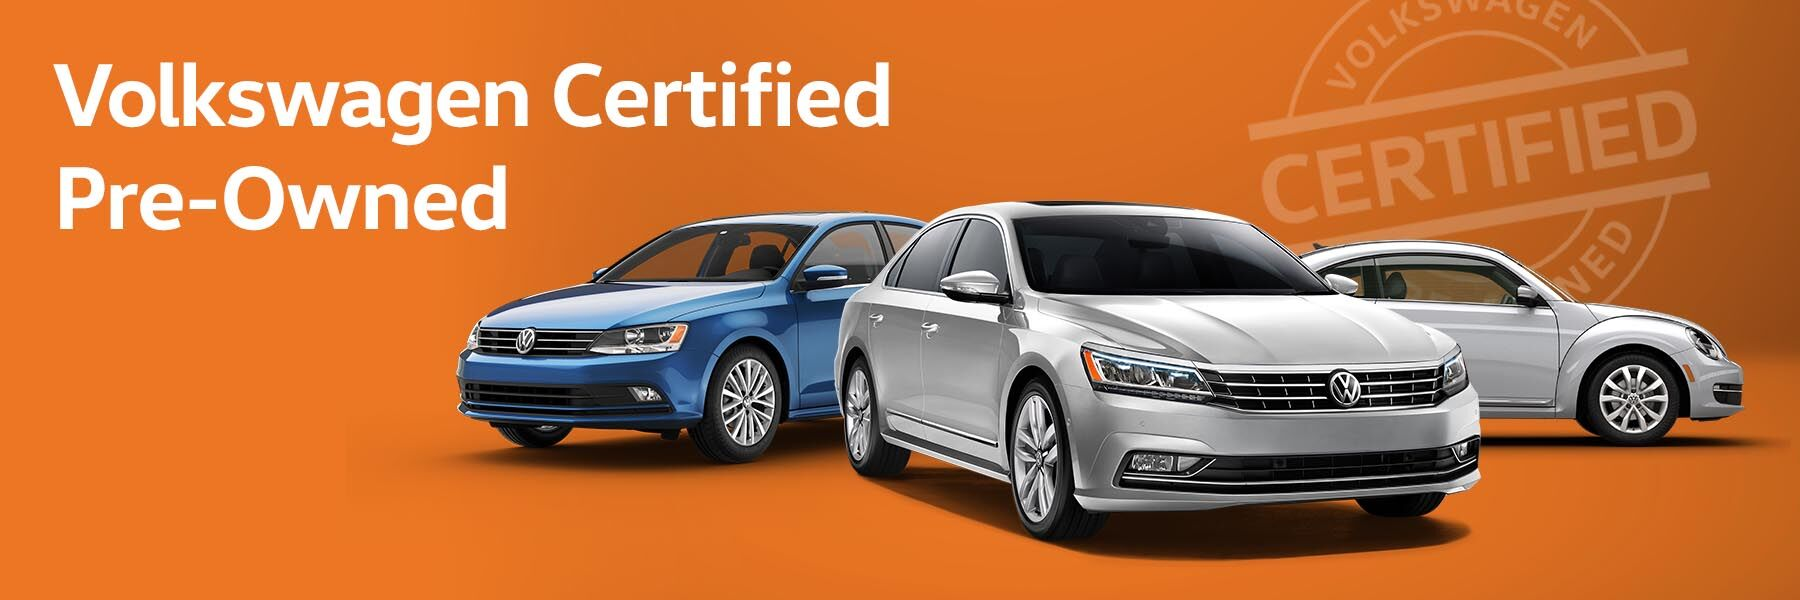 Volkswagen Certified Pre-Owned in Everett, WA